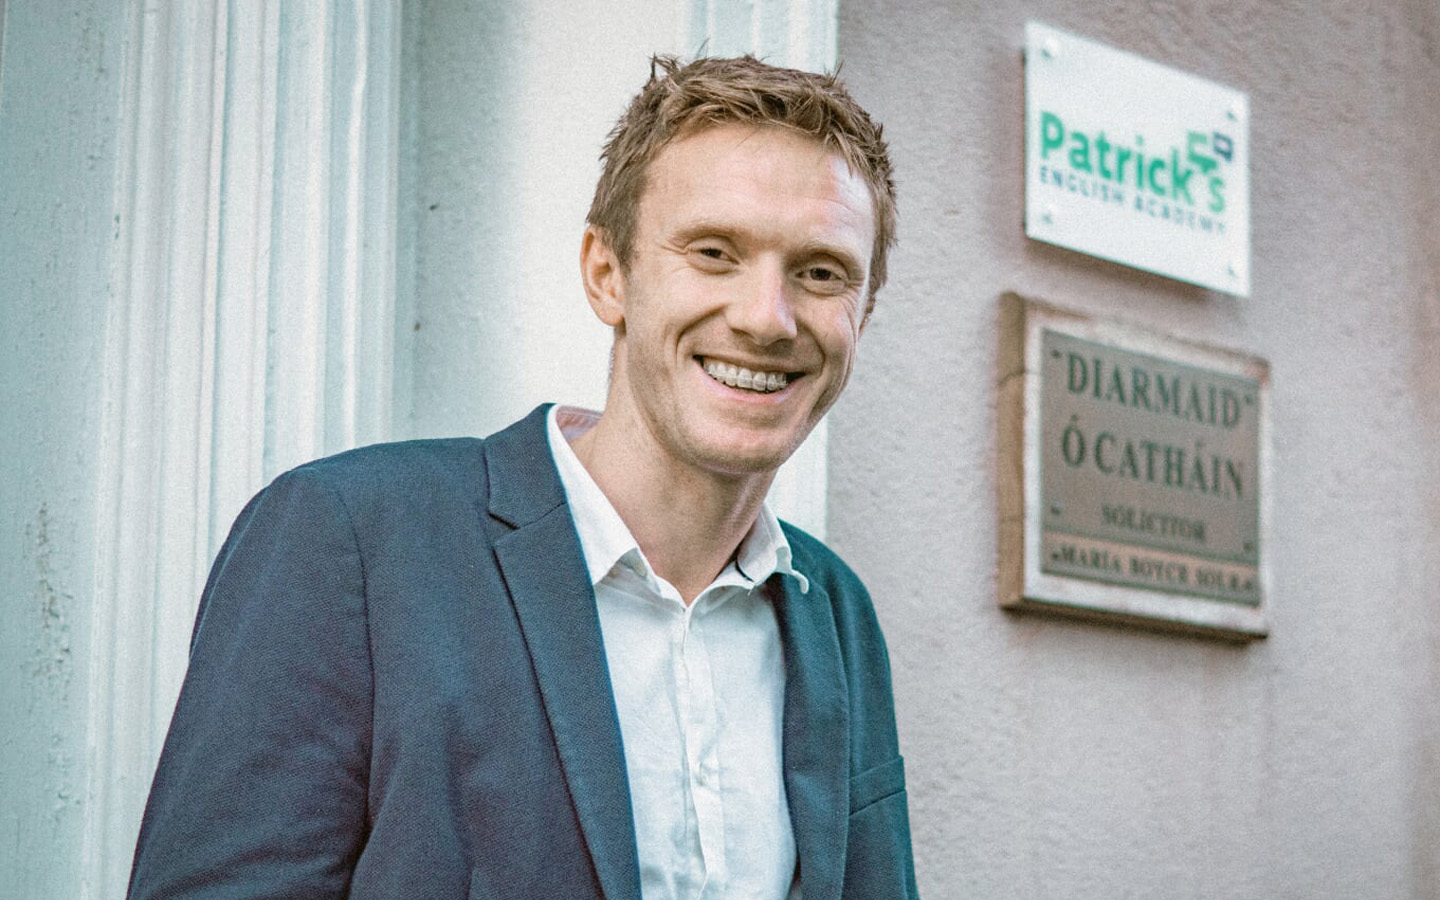 Patrick McCarthy, Owner of Patrick's English Academy